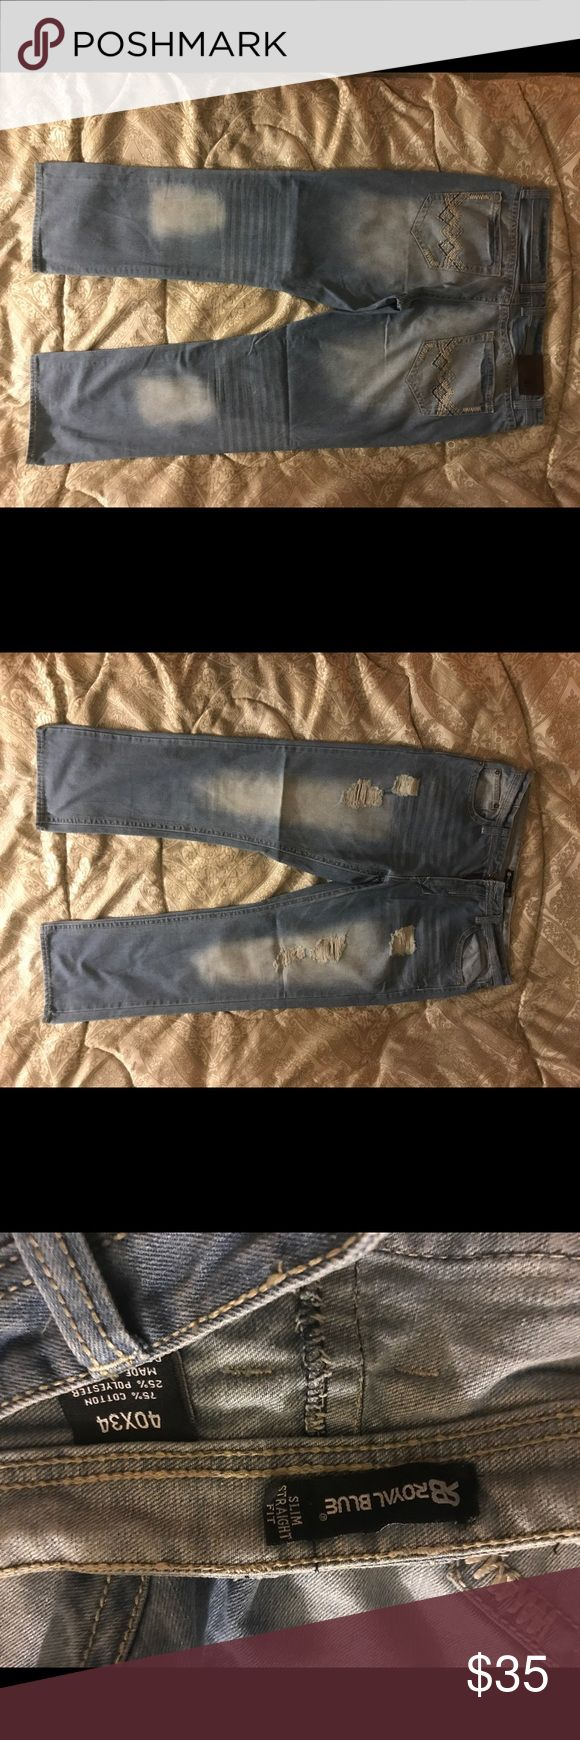 Like new Royal Blue, light blue denim jeans. Royal Blue slim straight fit light colored blue jeans. Size 40x34 Royal Blue Jeans Straight